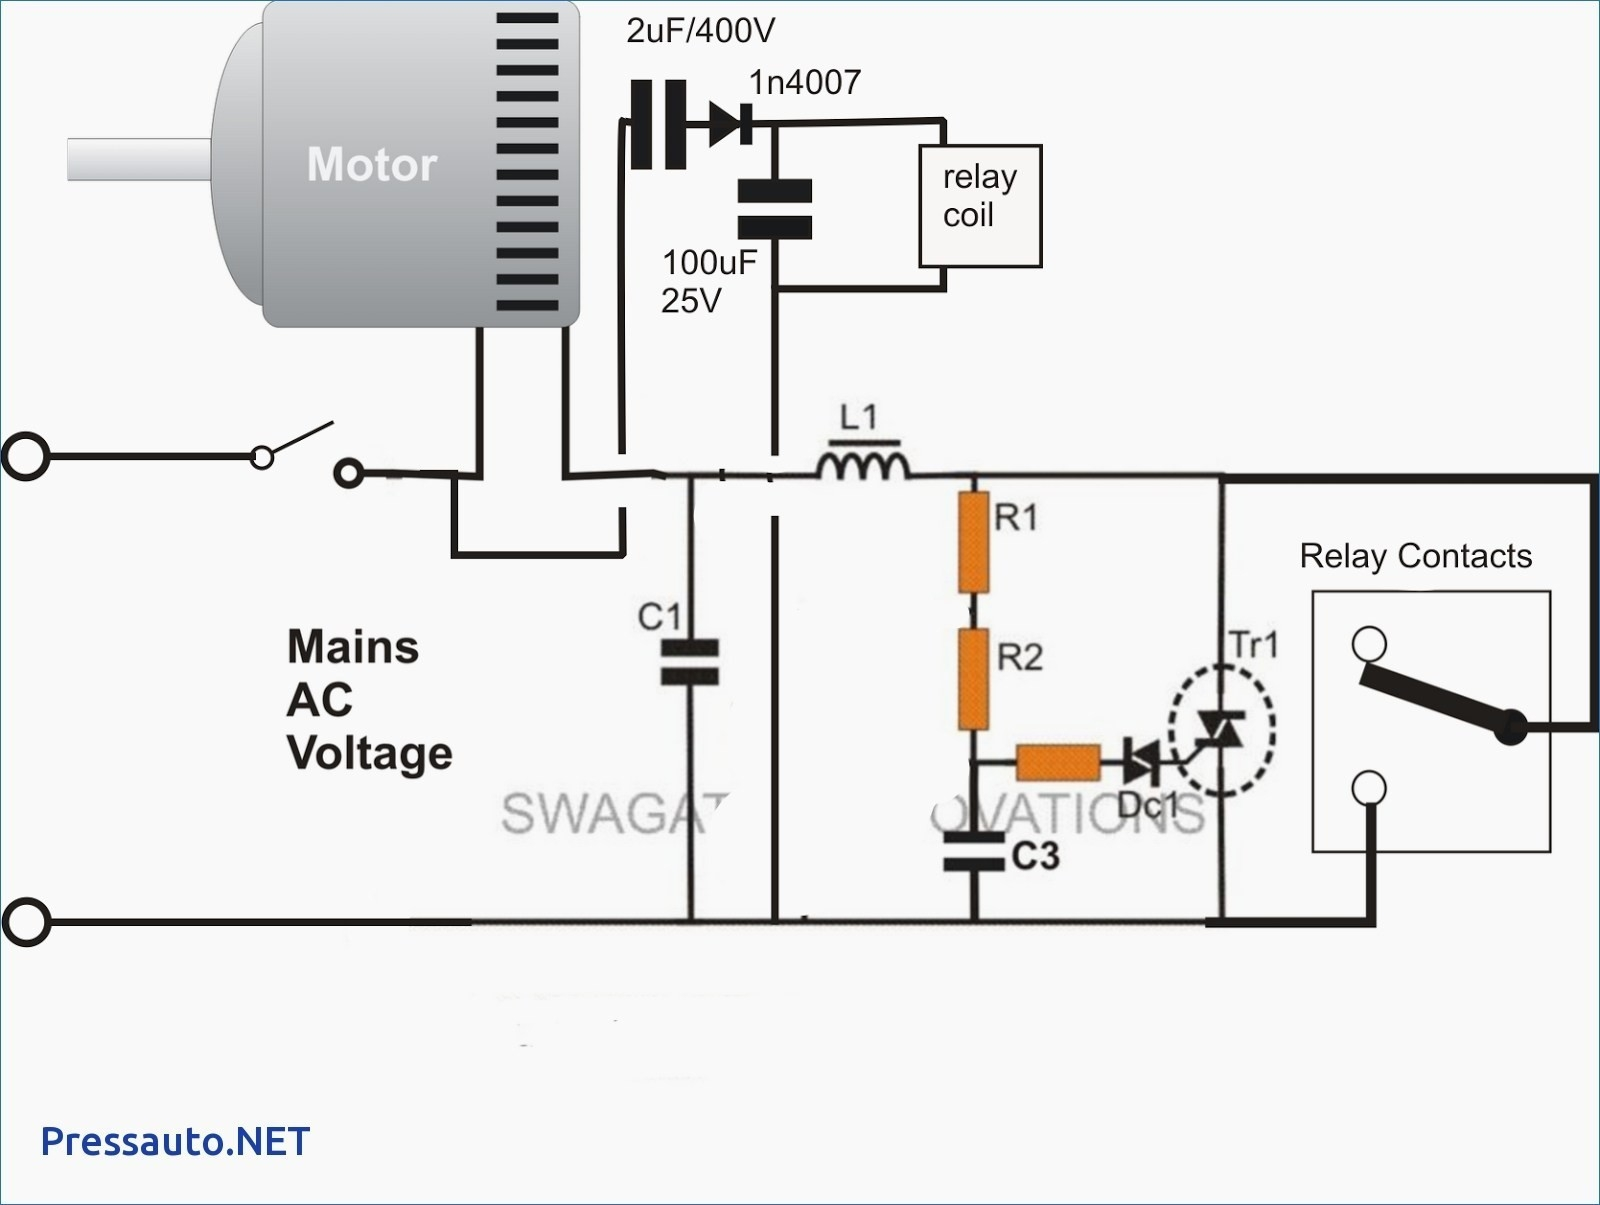 Wiring Diagram Of Three Phase Motor